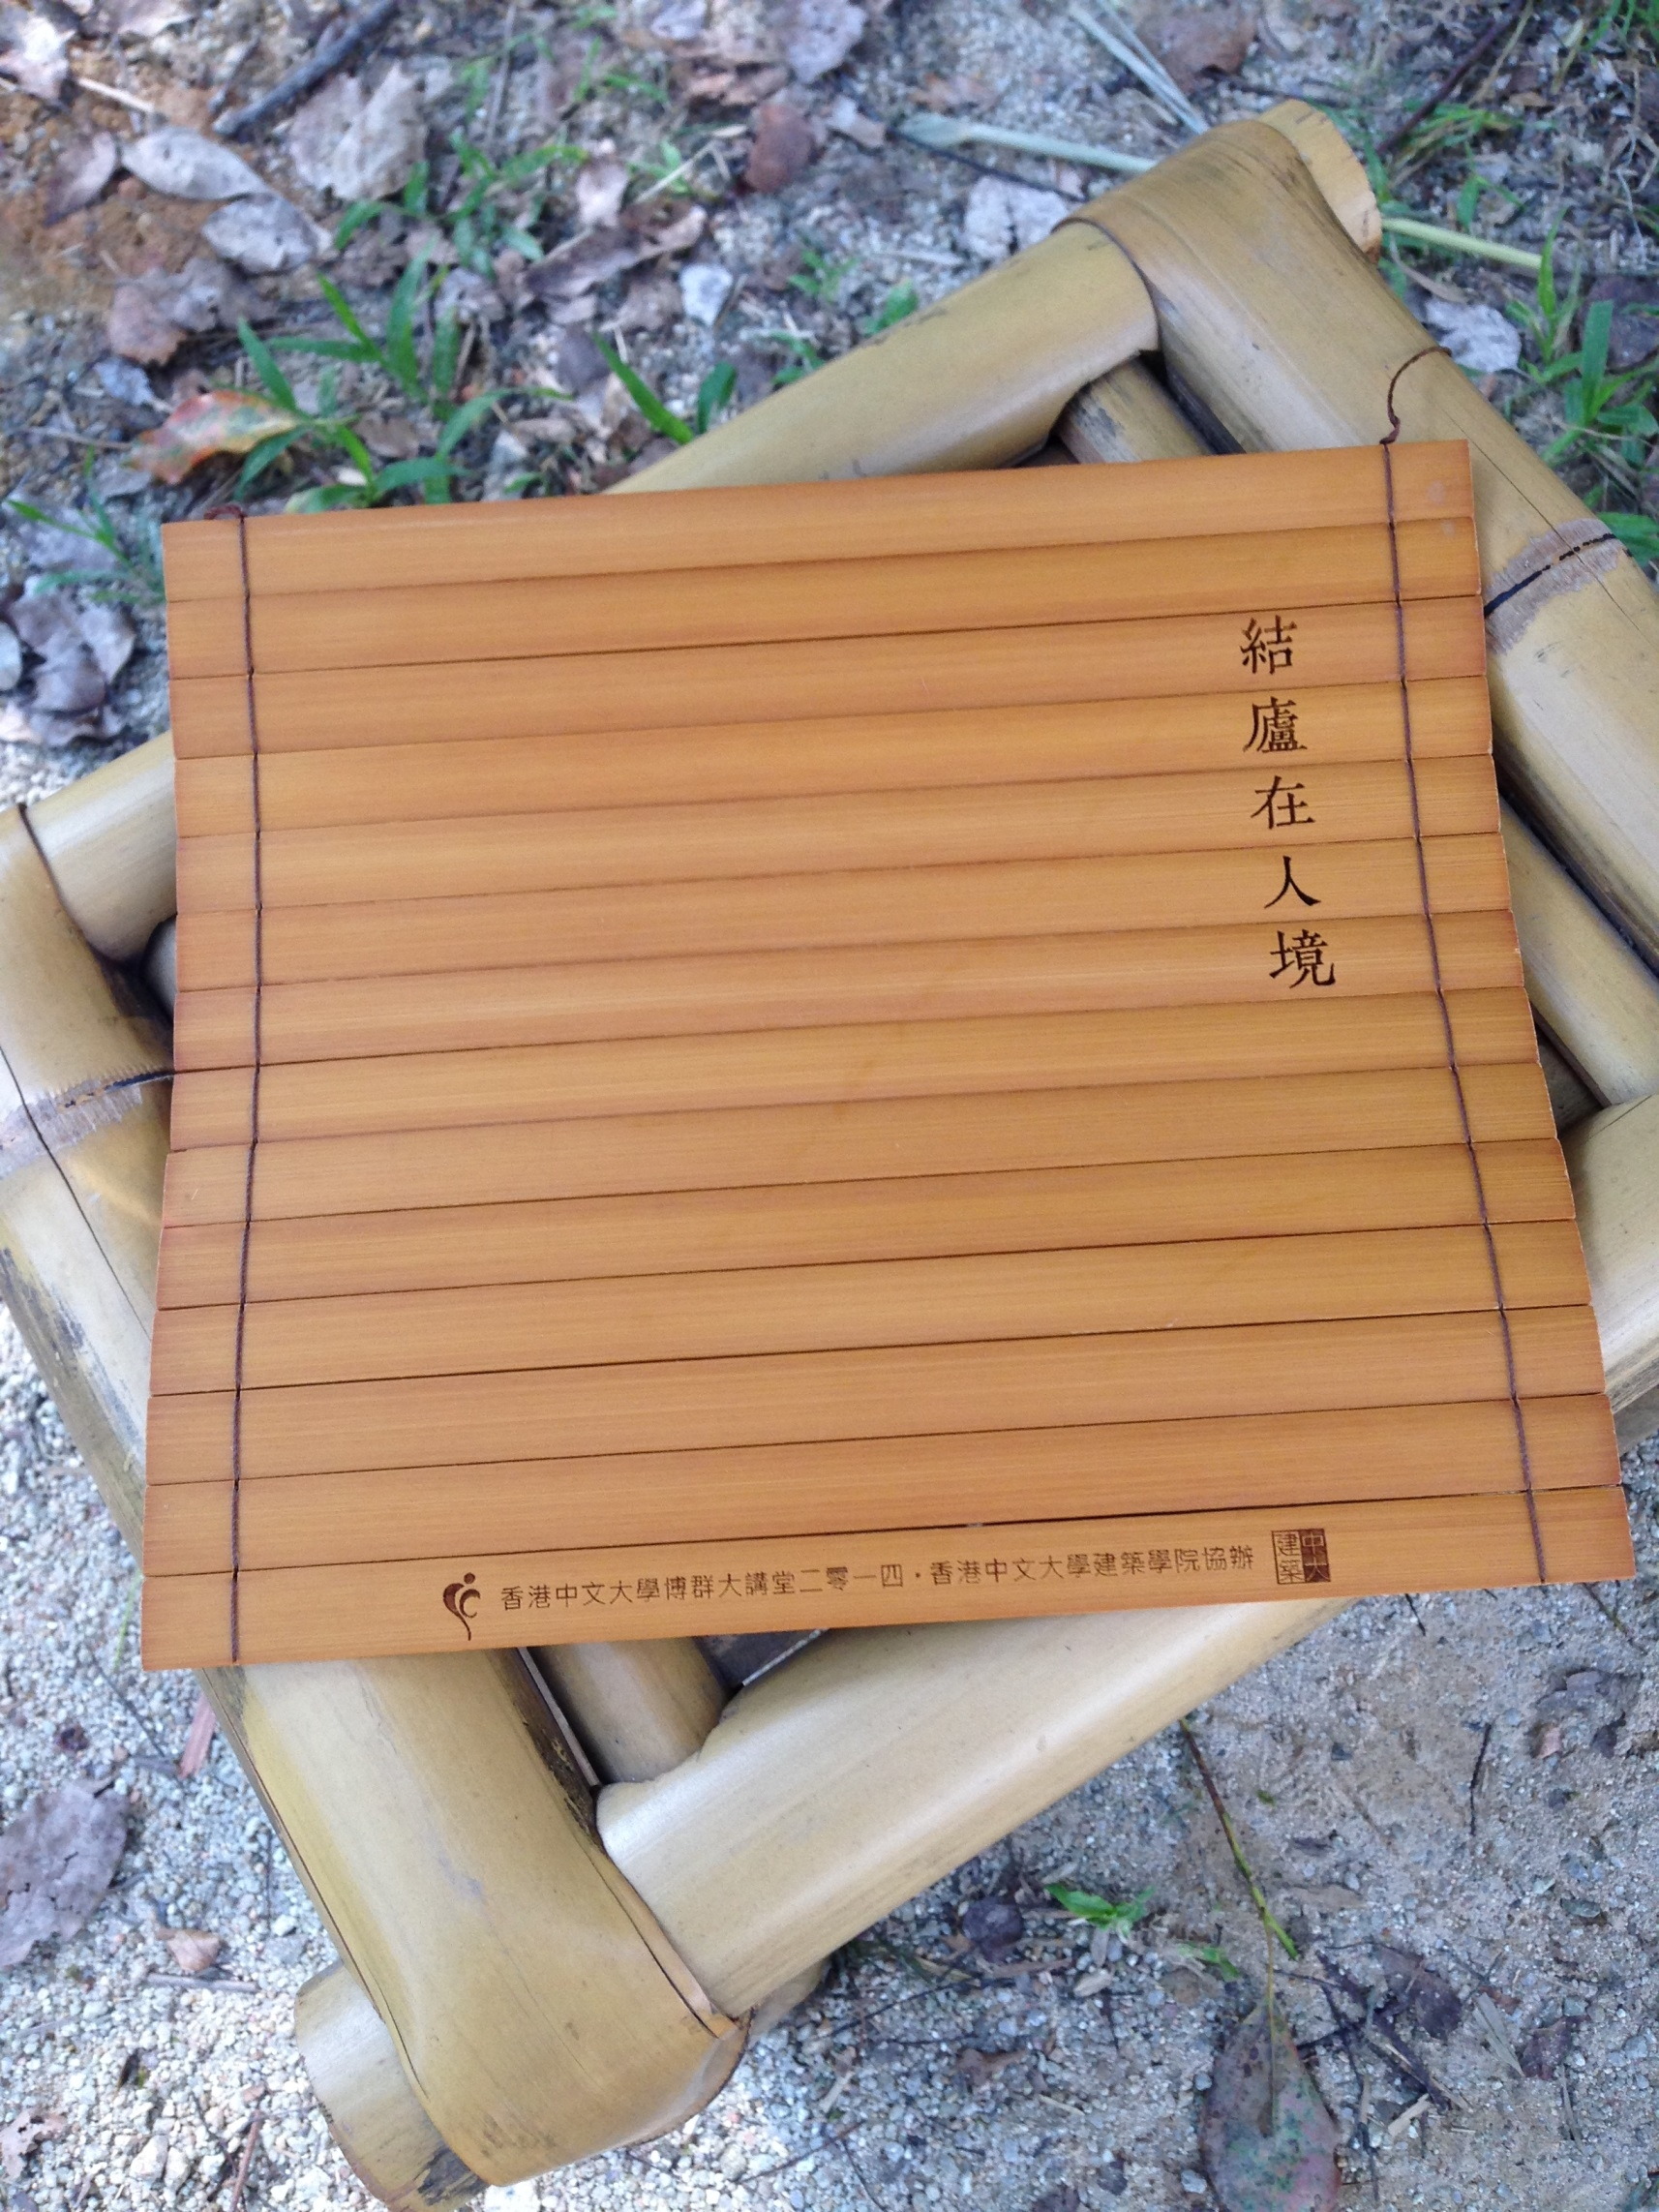 A bamboo scroll made for the 'Dialogue in the Bamboo Fence' activity.